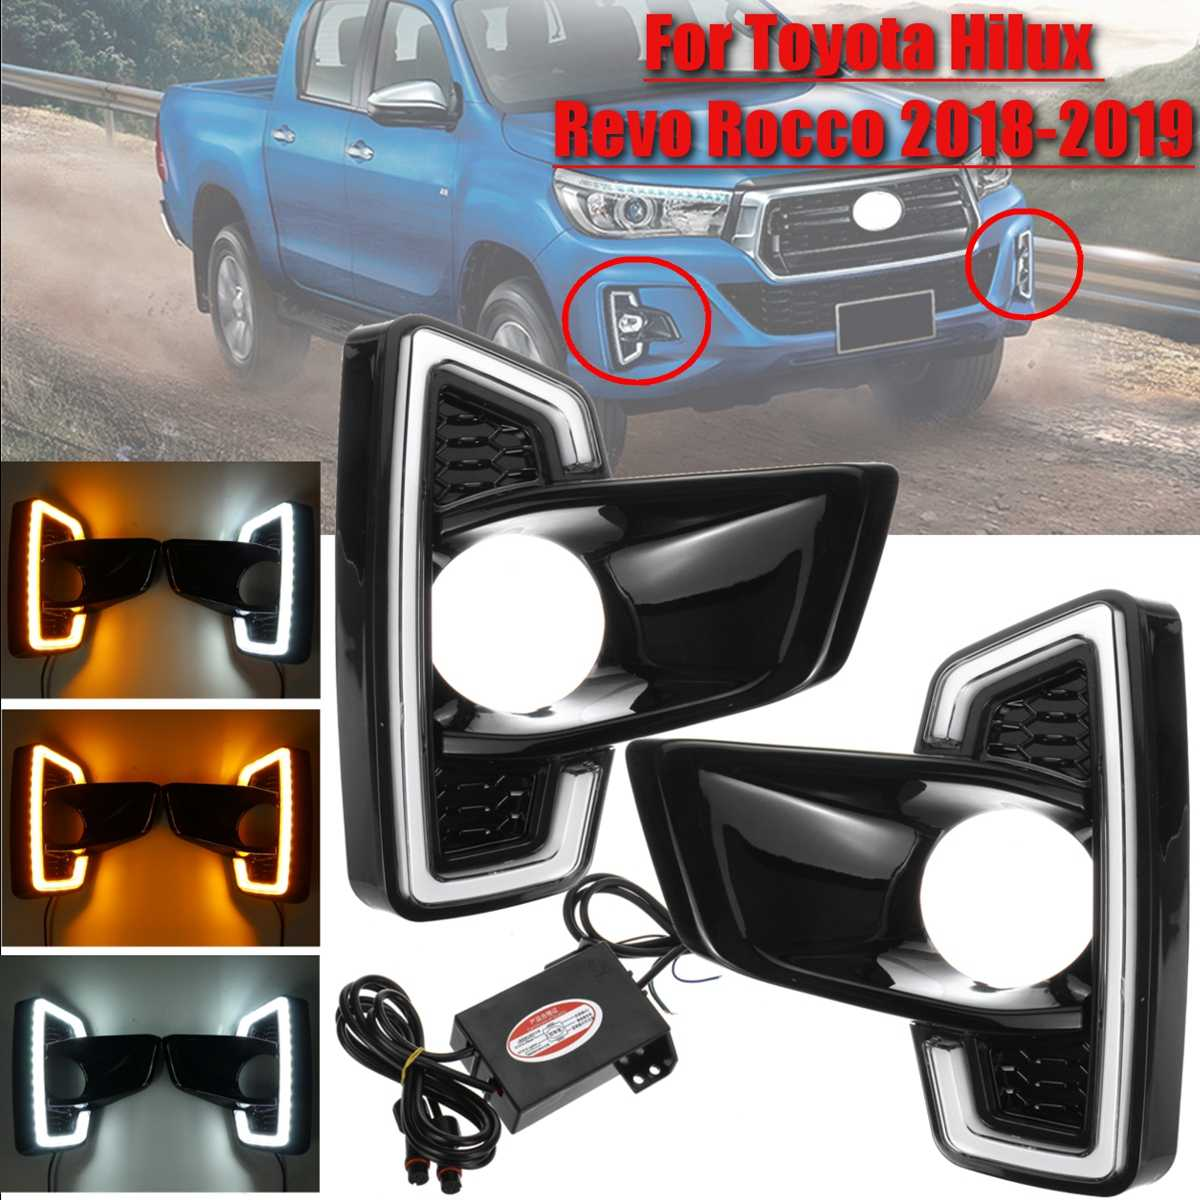 1 Pair Car Front Bumper LED DRL For Toyota Hilux Revo Rocco 2018 2019 Styling Fog Light Driving Lamp White Yellow Turn Signal